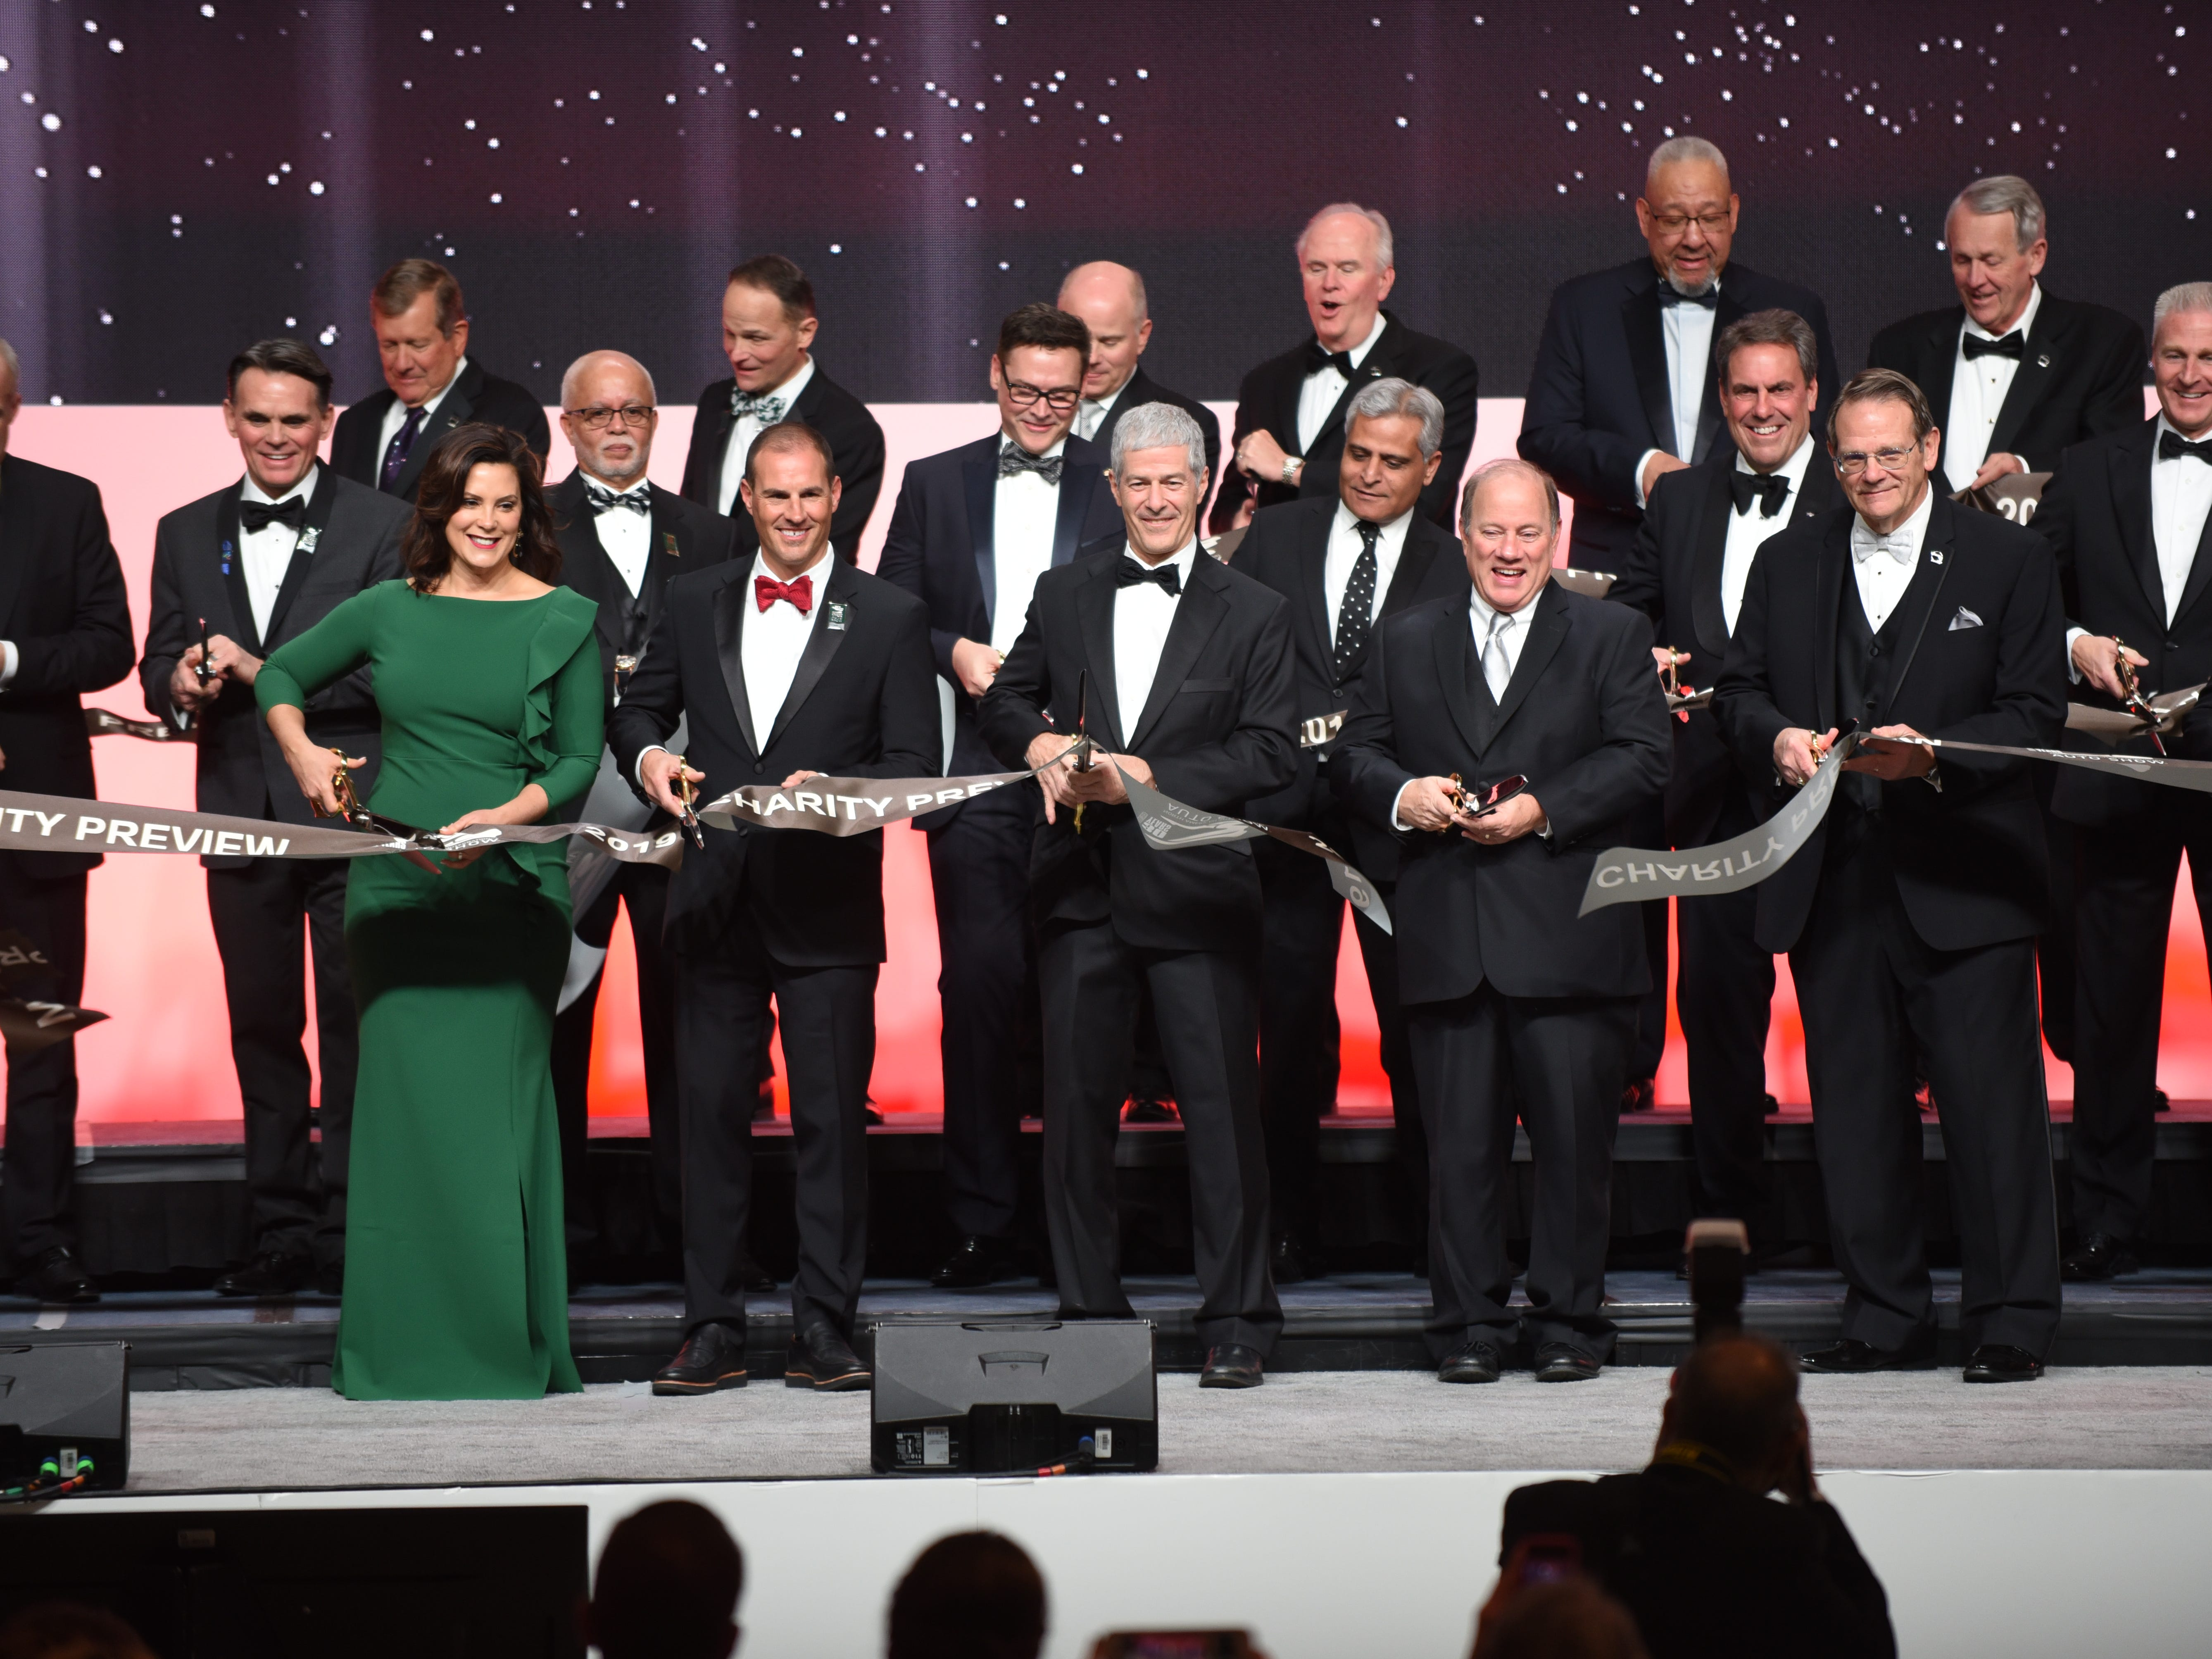 Michigan Gov. Gretchen Whitmer,  Detroit Mayor Mike Duggan and auto executives cut the ribbon on the 2019 Auto Show Charity Preview on Jan. 18, 2018.